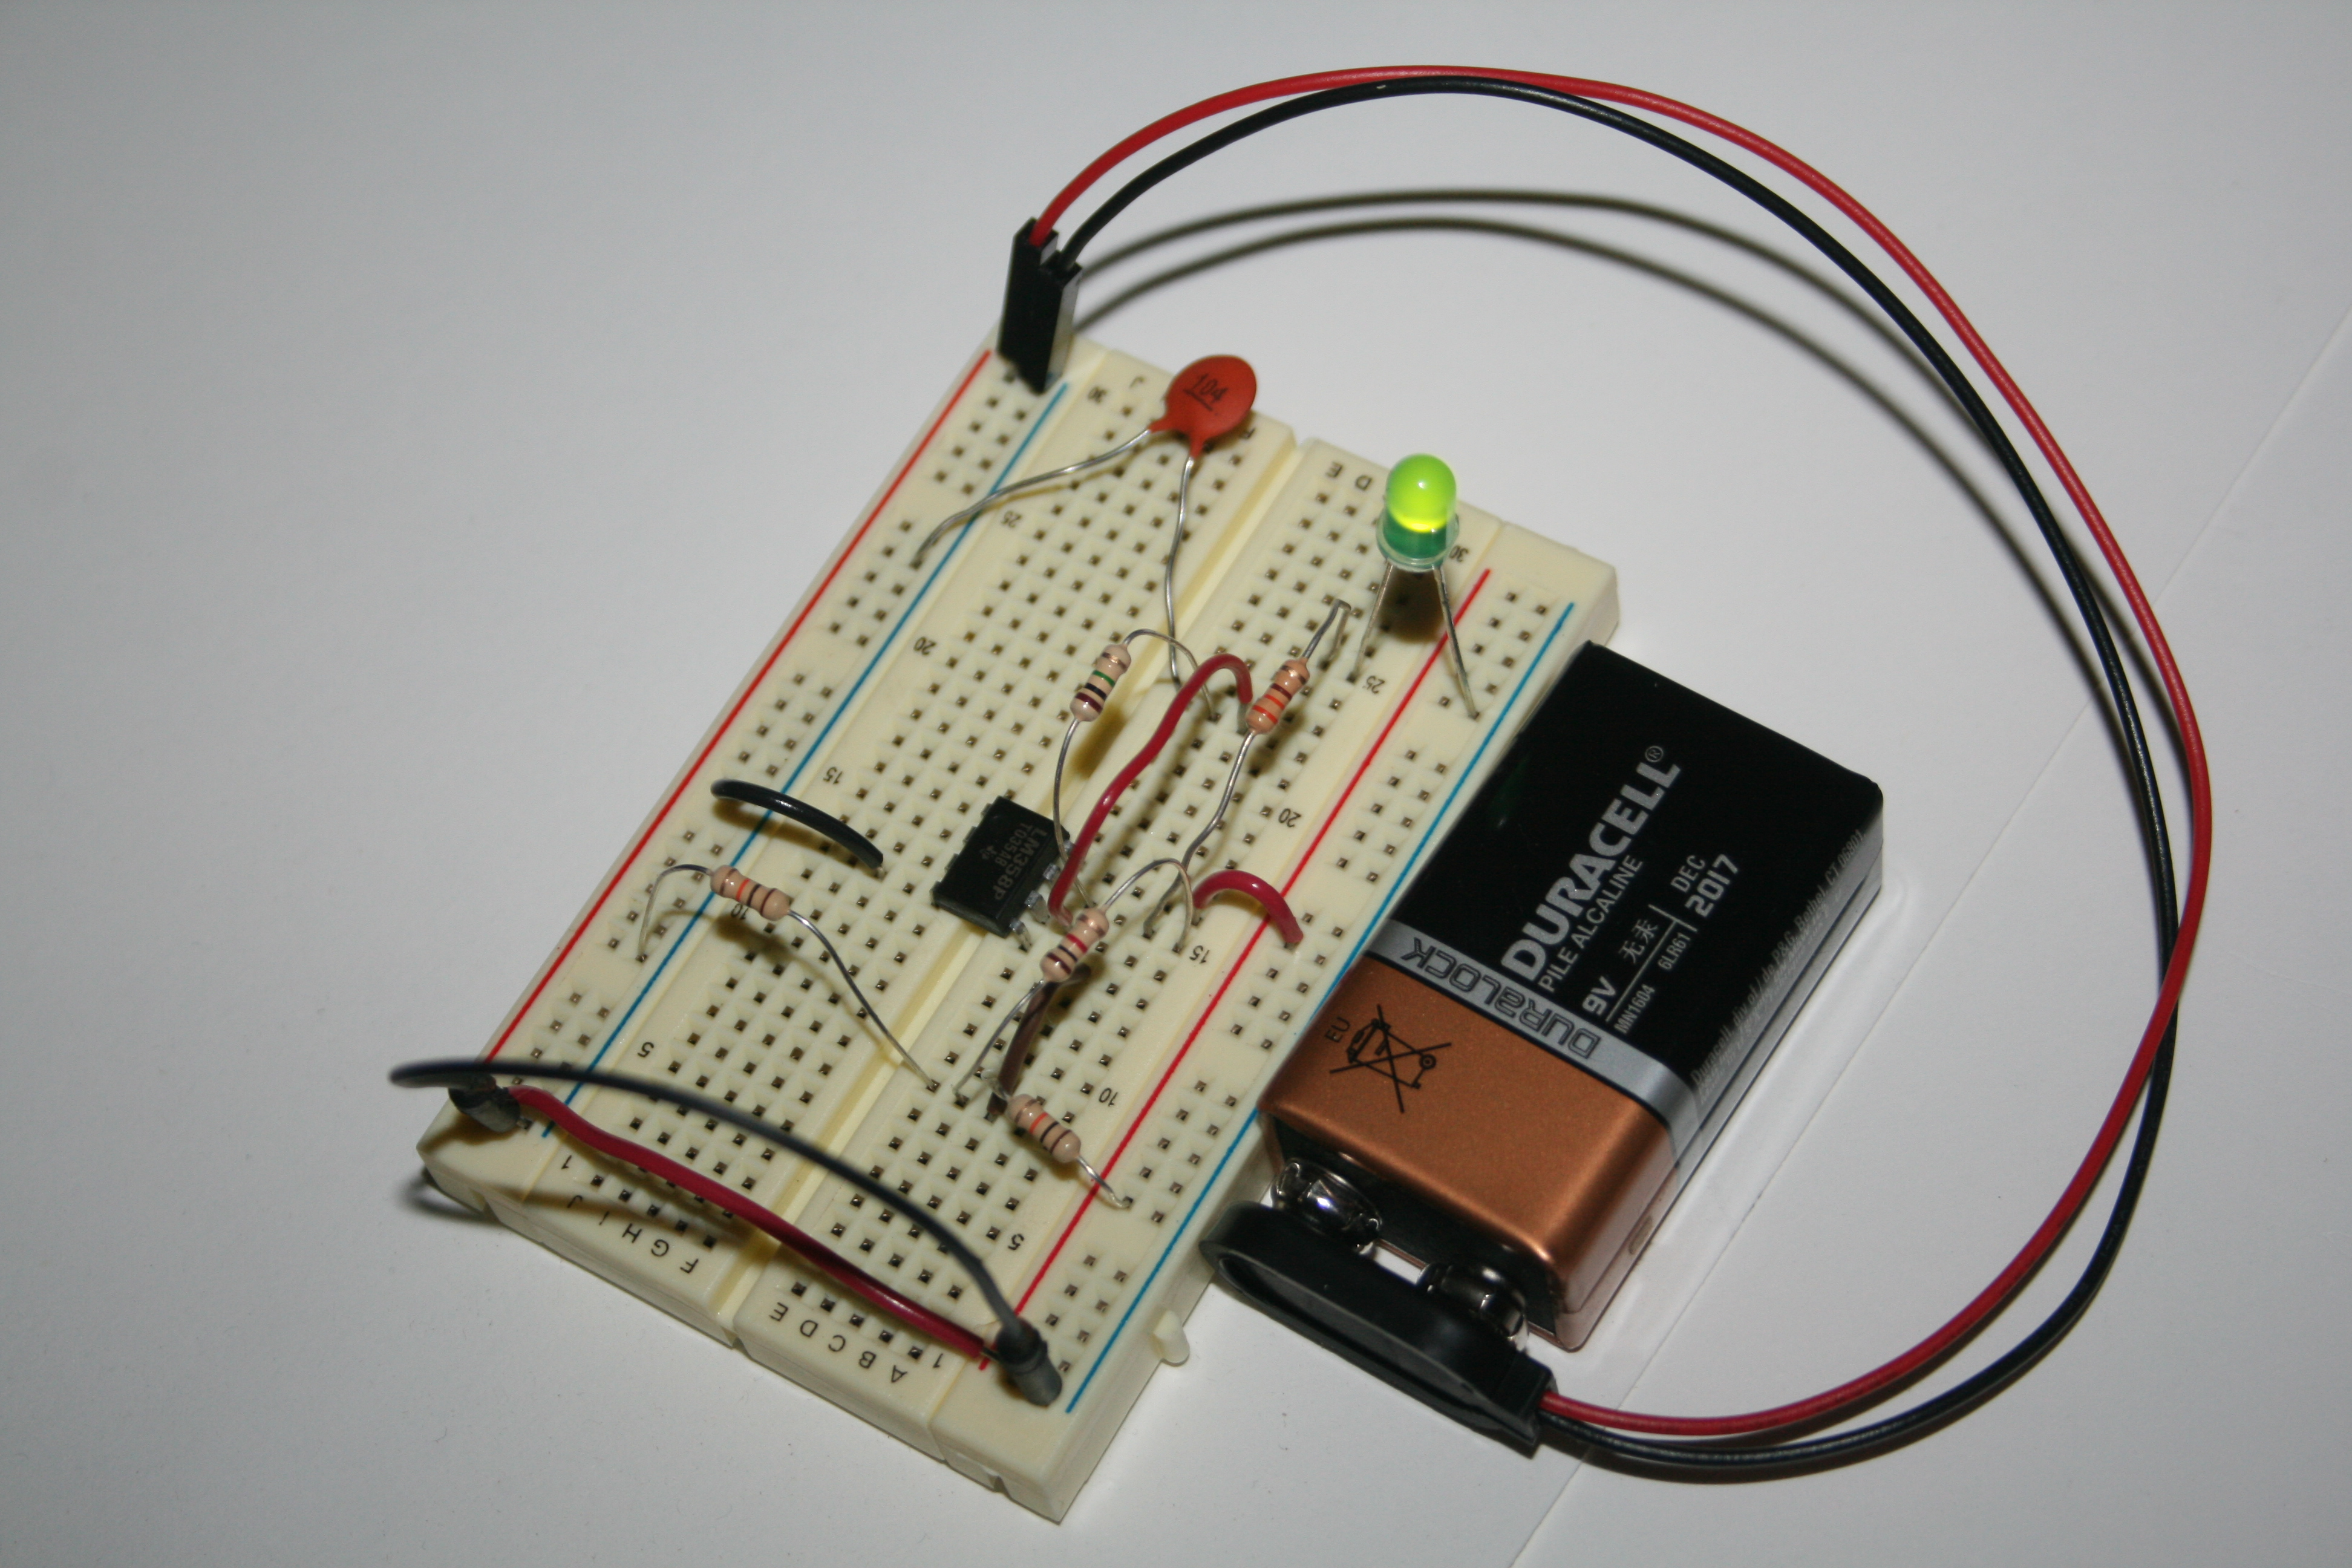 Op Amp Oscillator For The Circuit And Also Determine Frequency Of Oscillations Light Will Blink At A Determined By Values Resistors Capacitors You Could Observe Oscillation With An